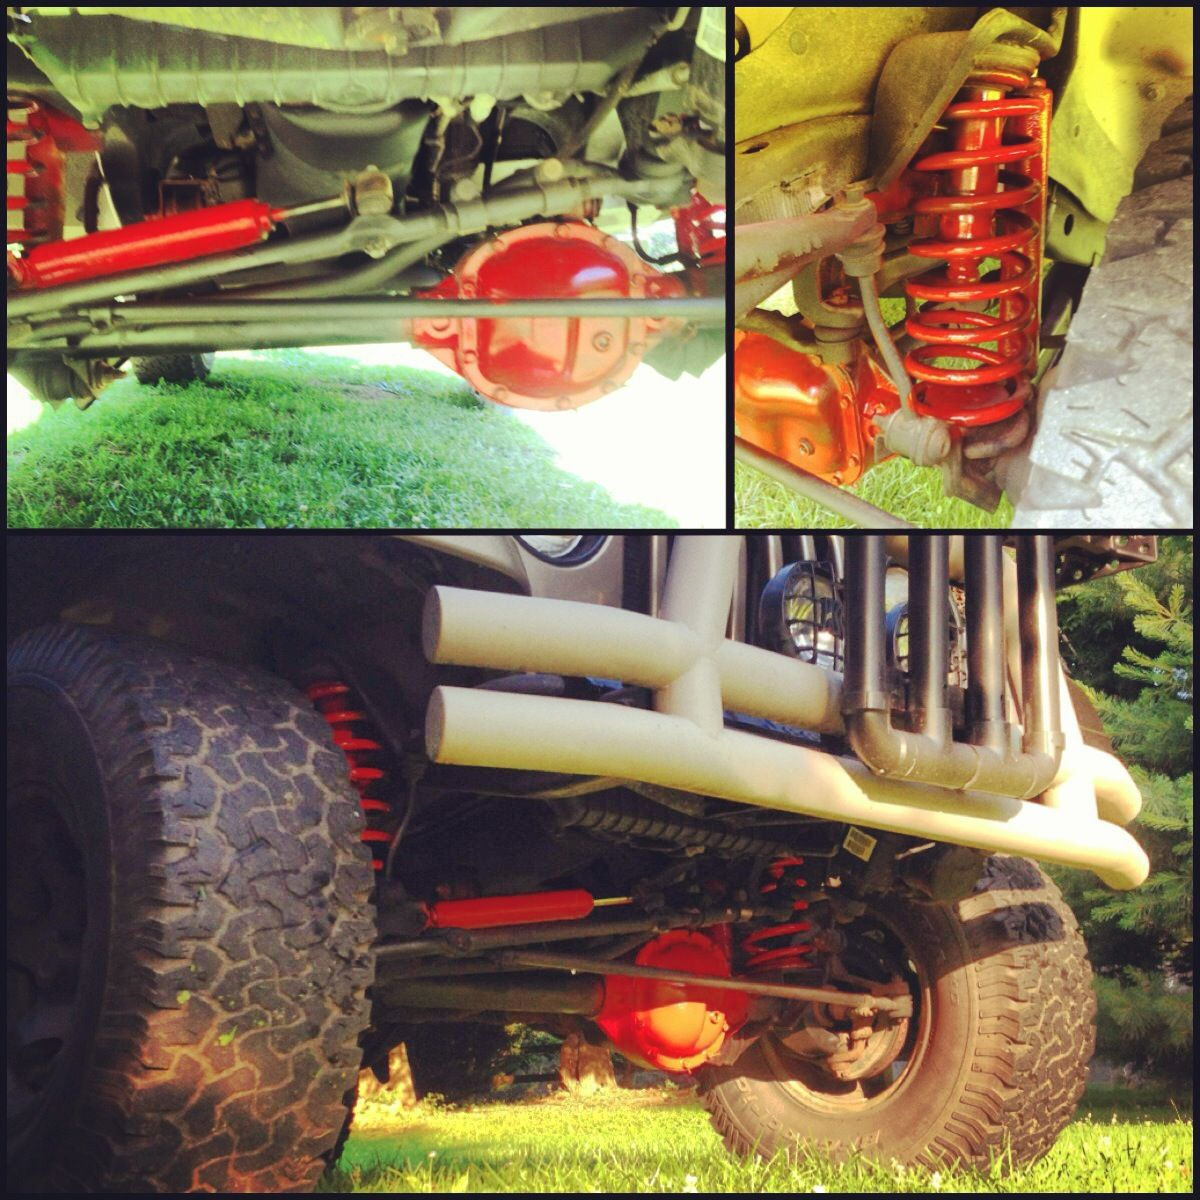 Painted Shocks Lift Kit And Differential 10 Jeep Wrangler Jeeptjsuspensiondiagram Basic Doityourself Jk Front Lifted Diy Red Paintitred Paint